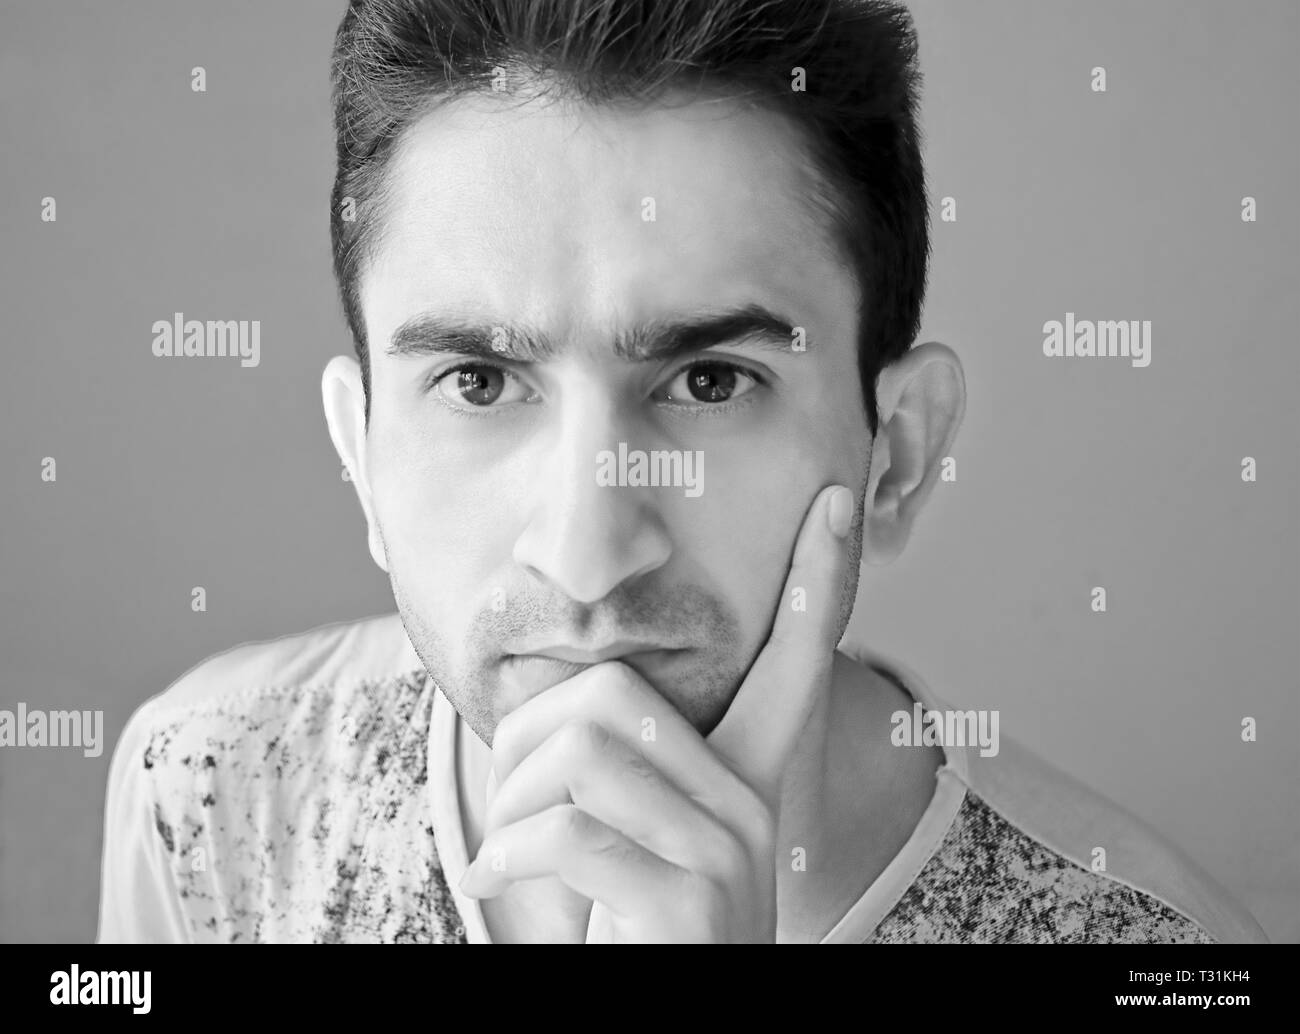 Black and white portrait of young man contemplating - Stock Image